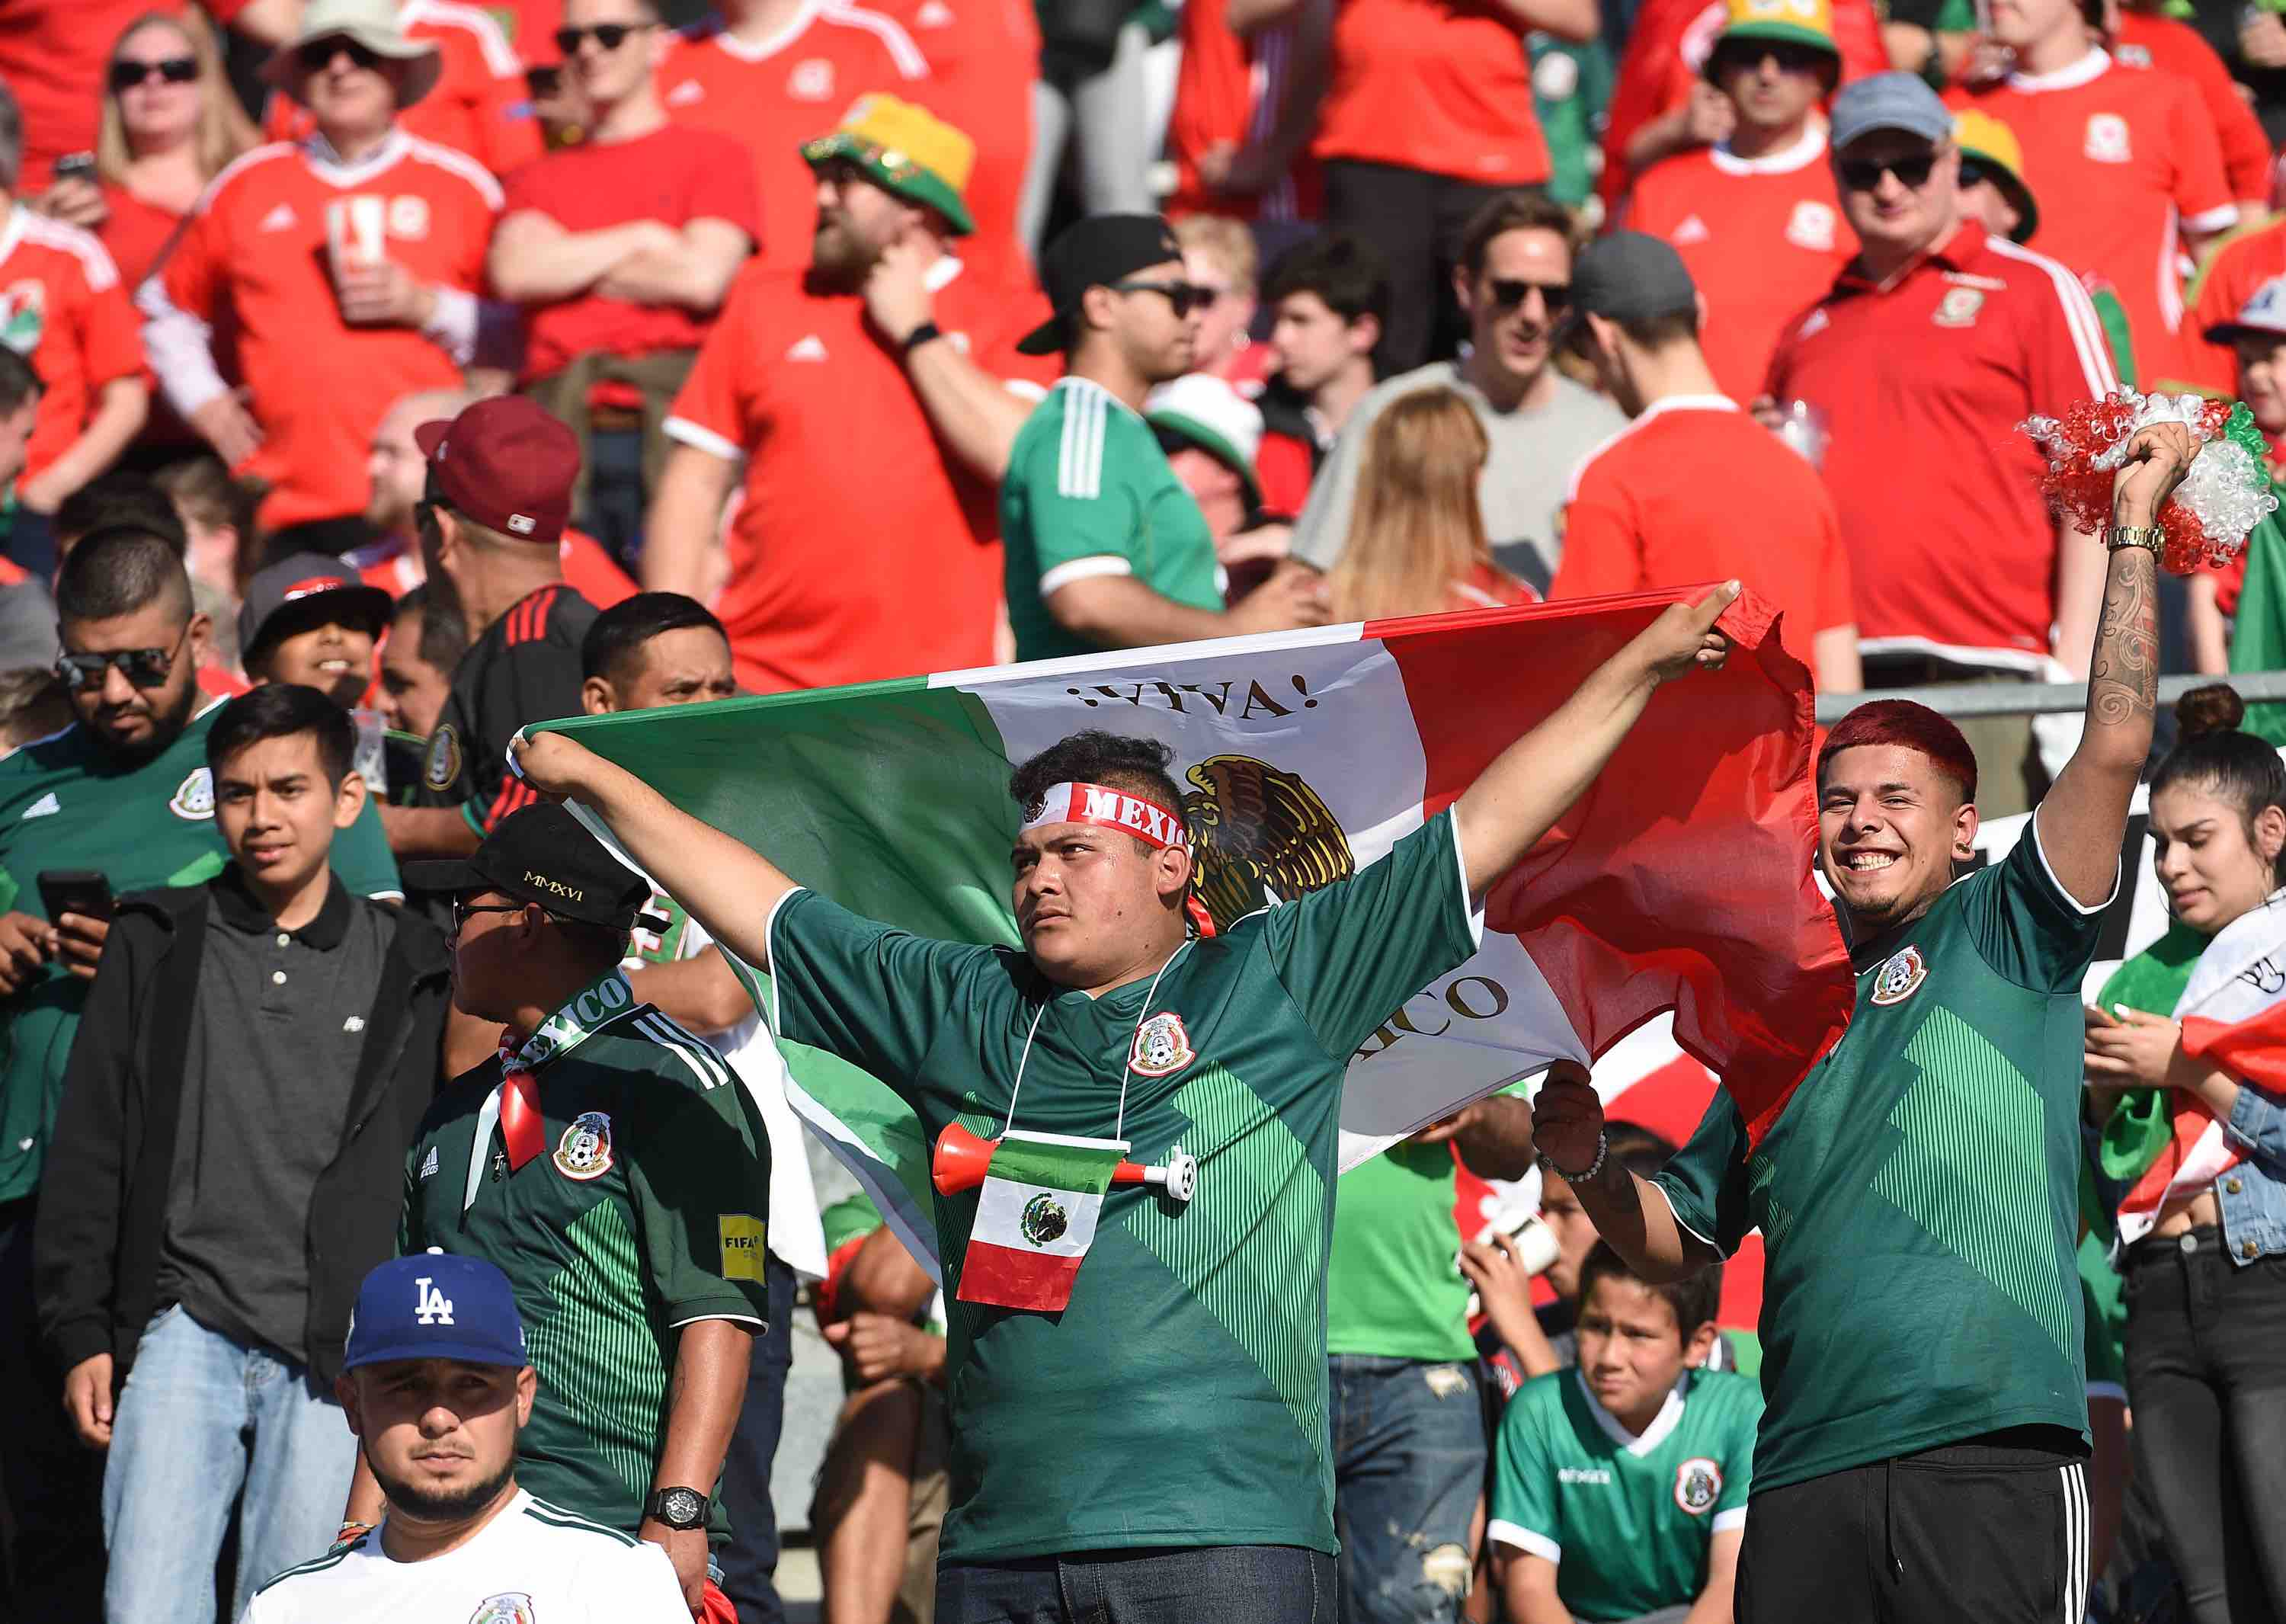 There Are More Mexican Fans at the World Cup Than Any Other Latin American Country